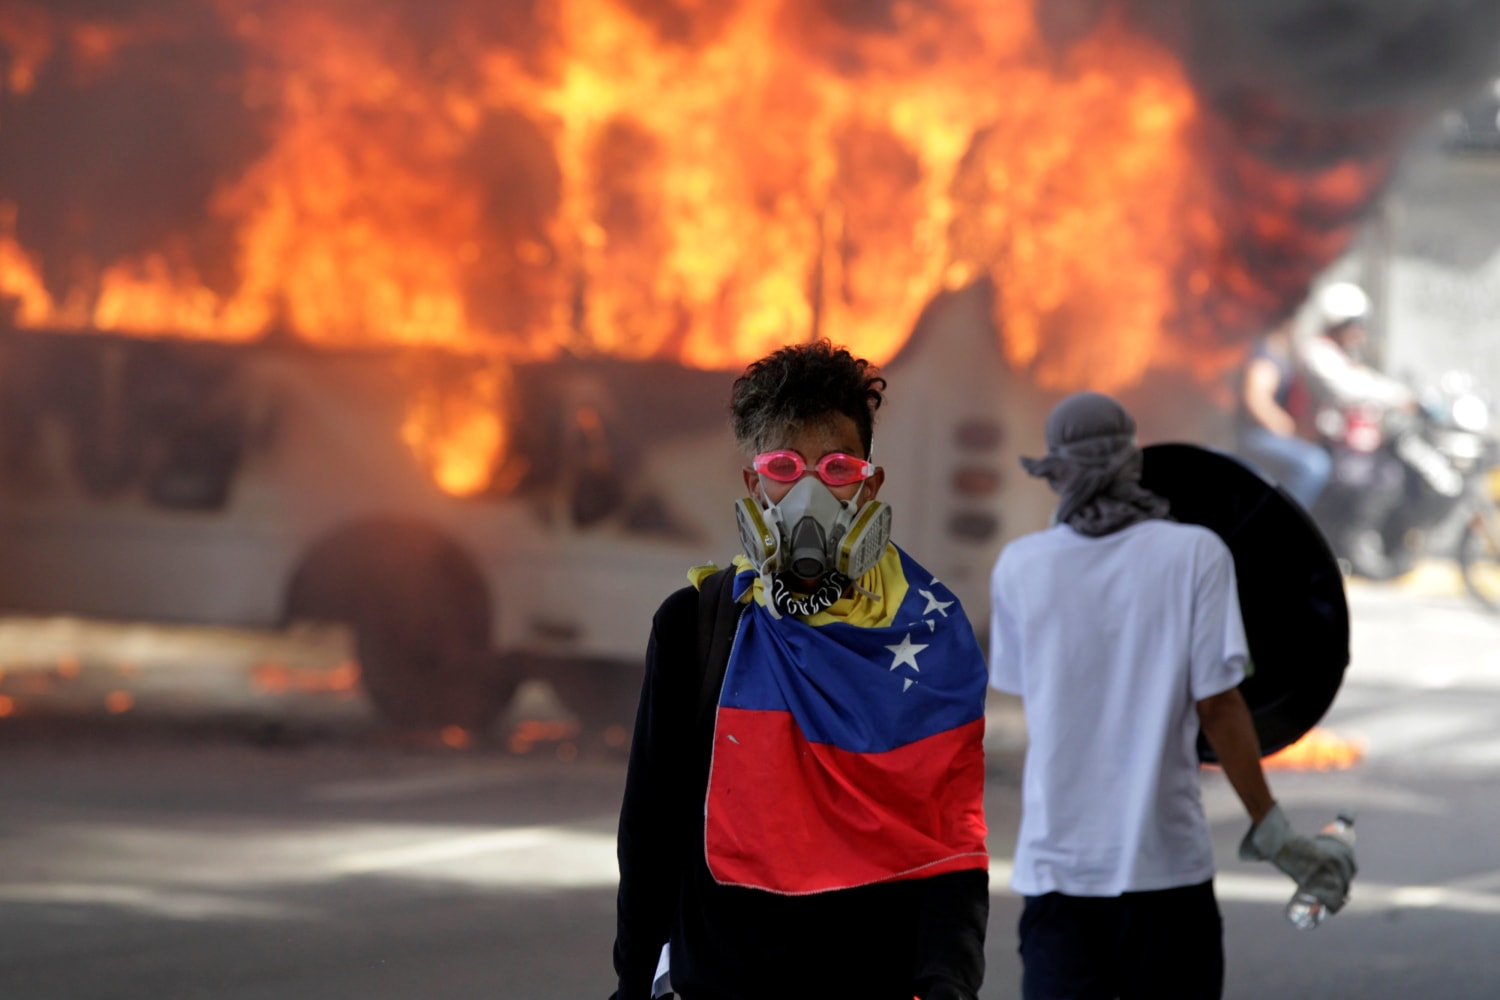 the crisis in venezuela Mic listen to the podcast: penn's william burke-white and nyu's alejandro velasco discuss the crisis in venezuela for more than a year now, venezuelans have borne economic hardships that have spilled out in the form of food riots, long lines at supermarkets and massive street protests underlying .